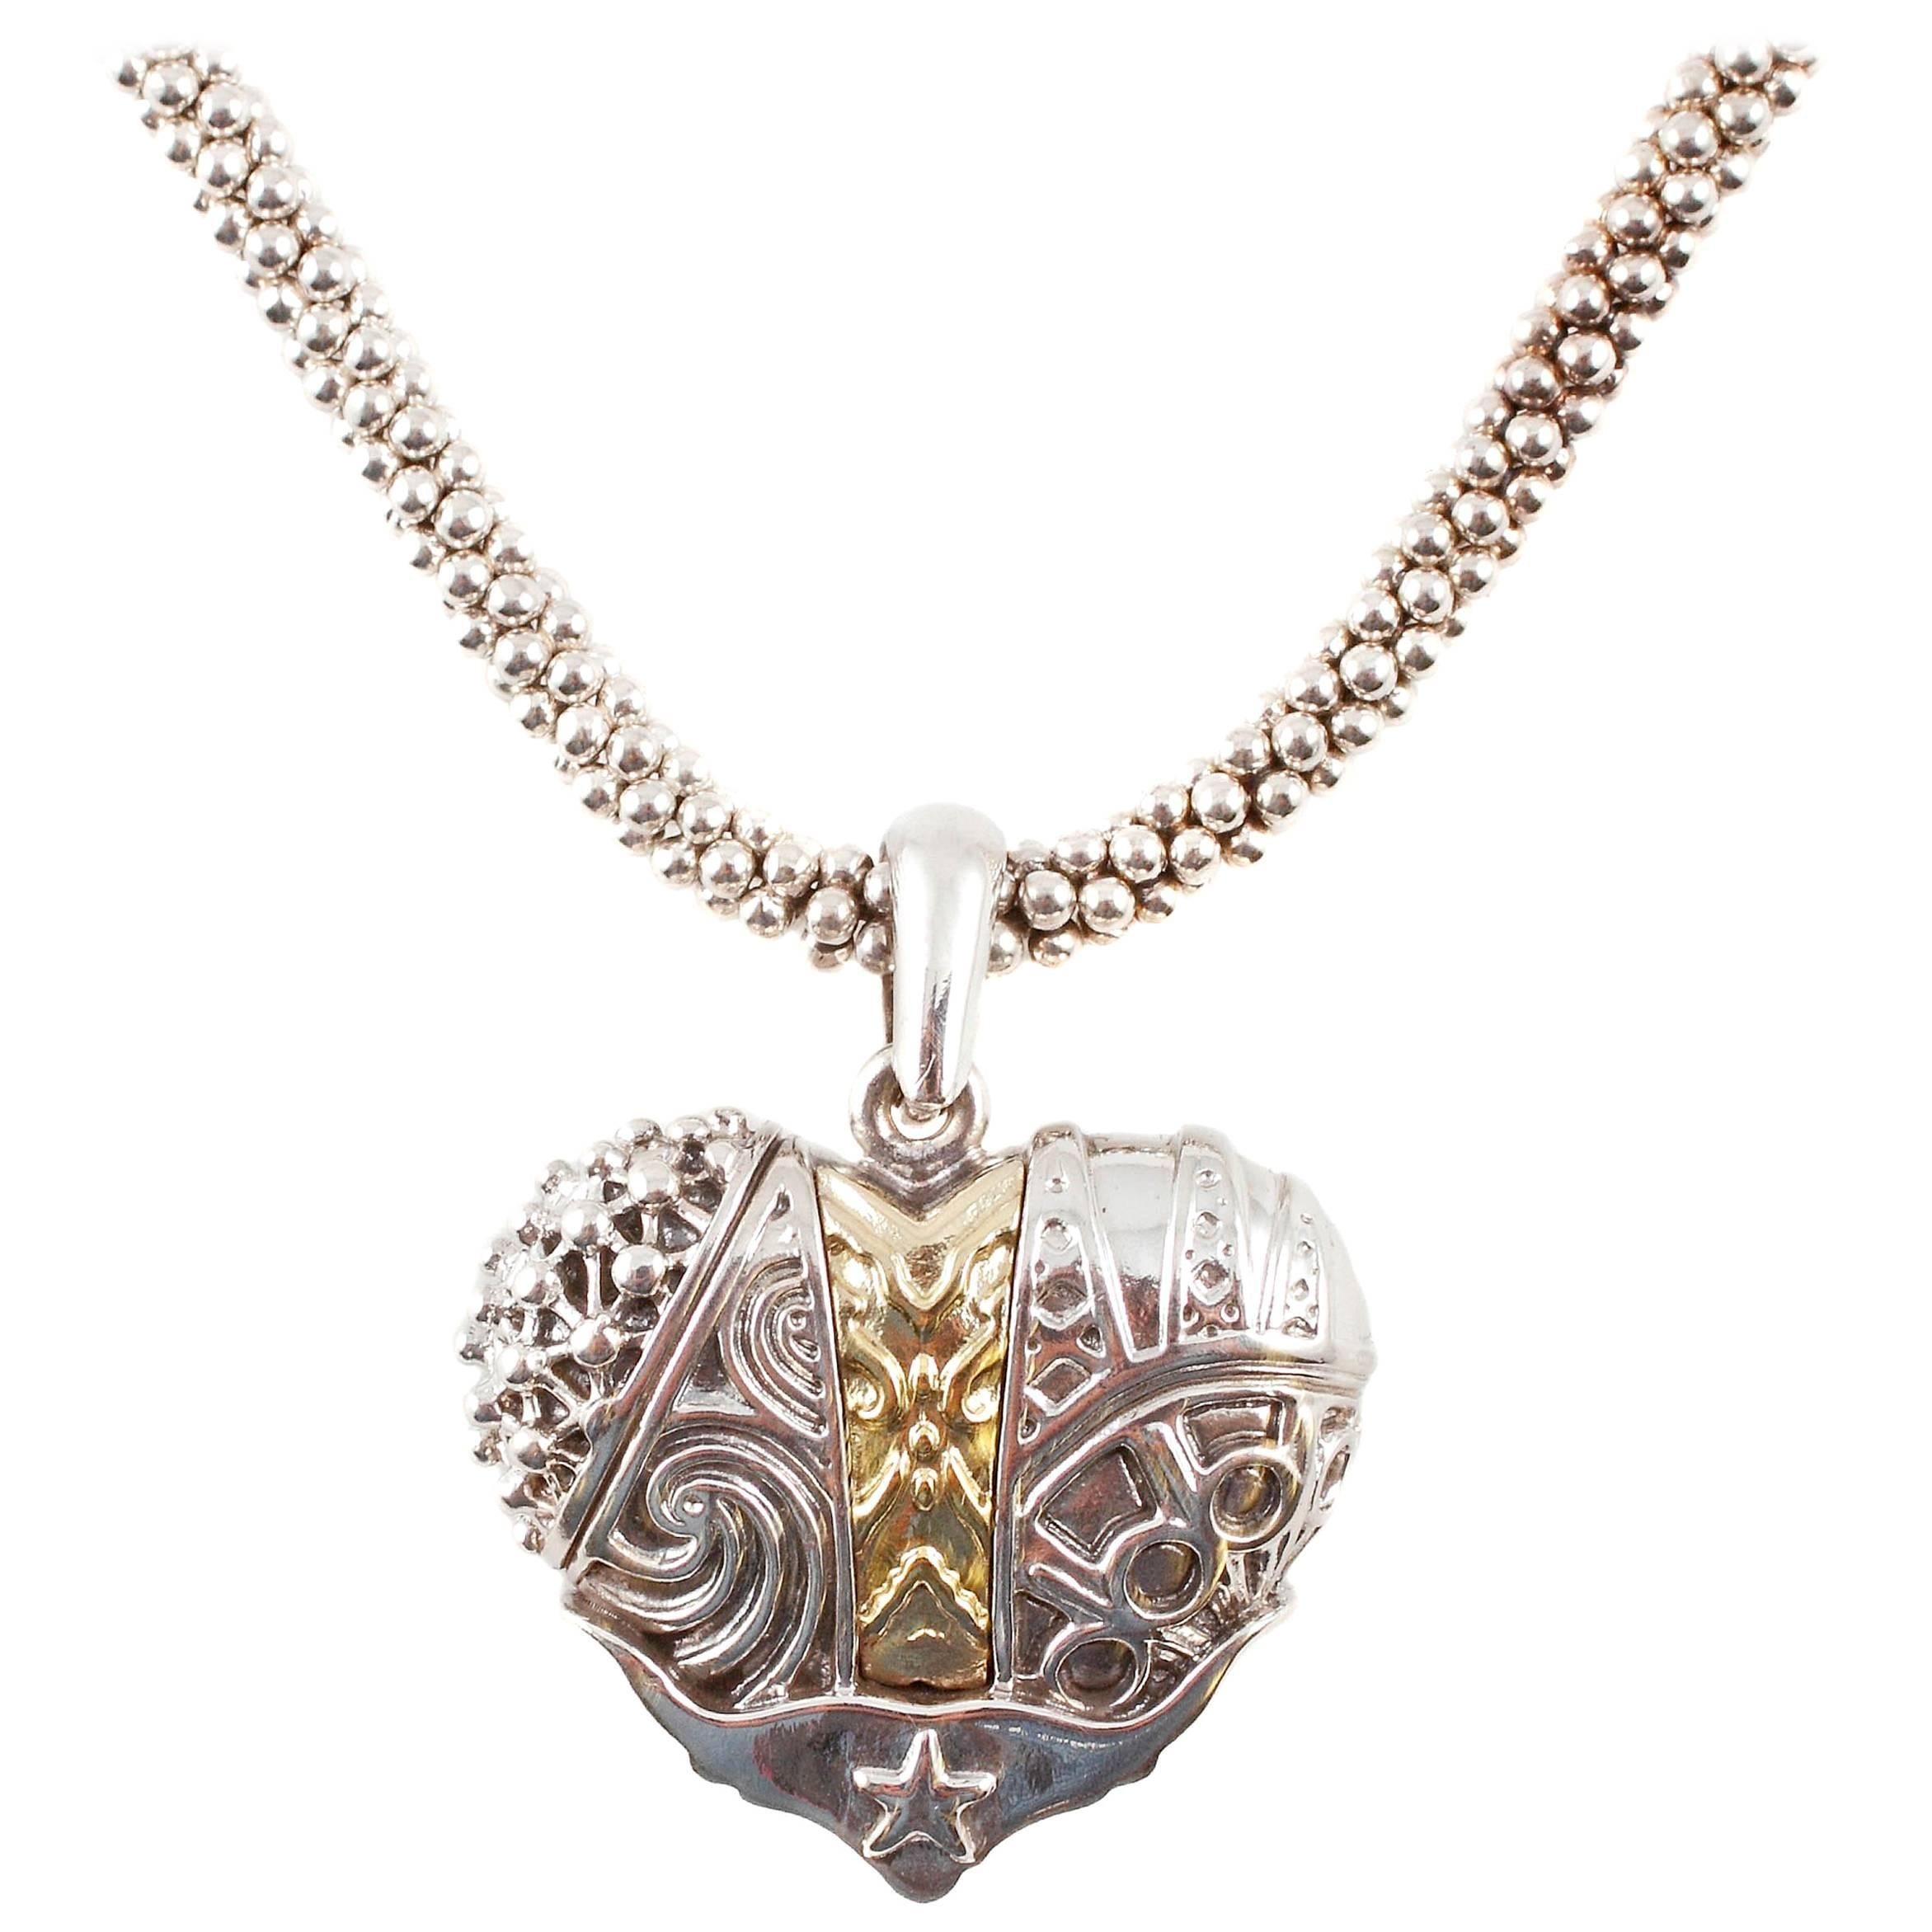 necklaces albion diamond petite pendant morganite enlarged products david and necklace yurman jewelry